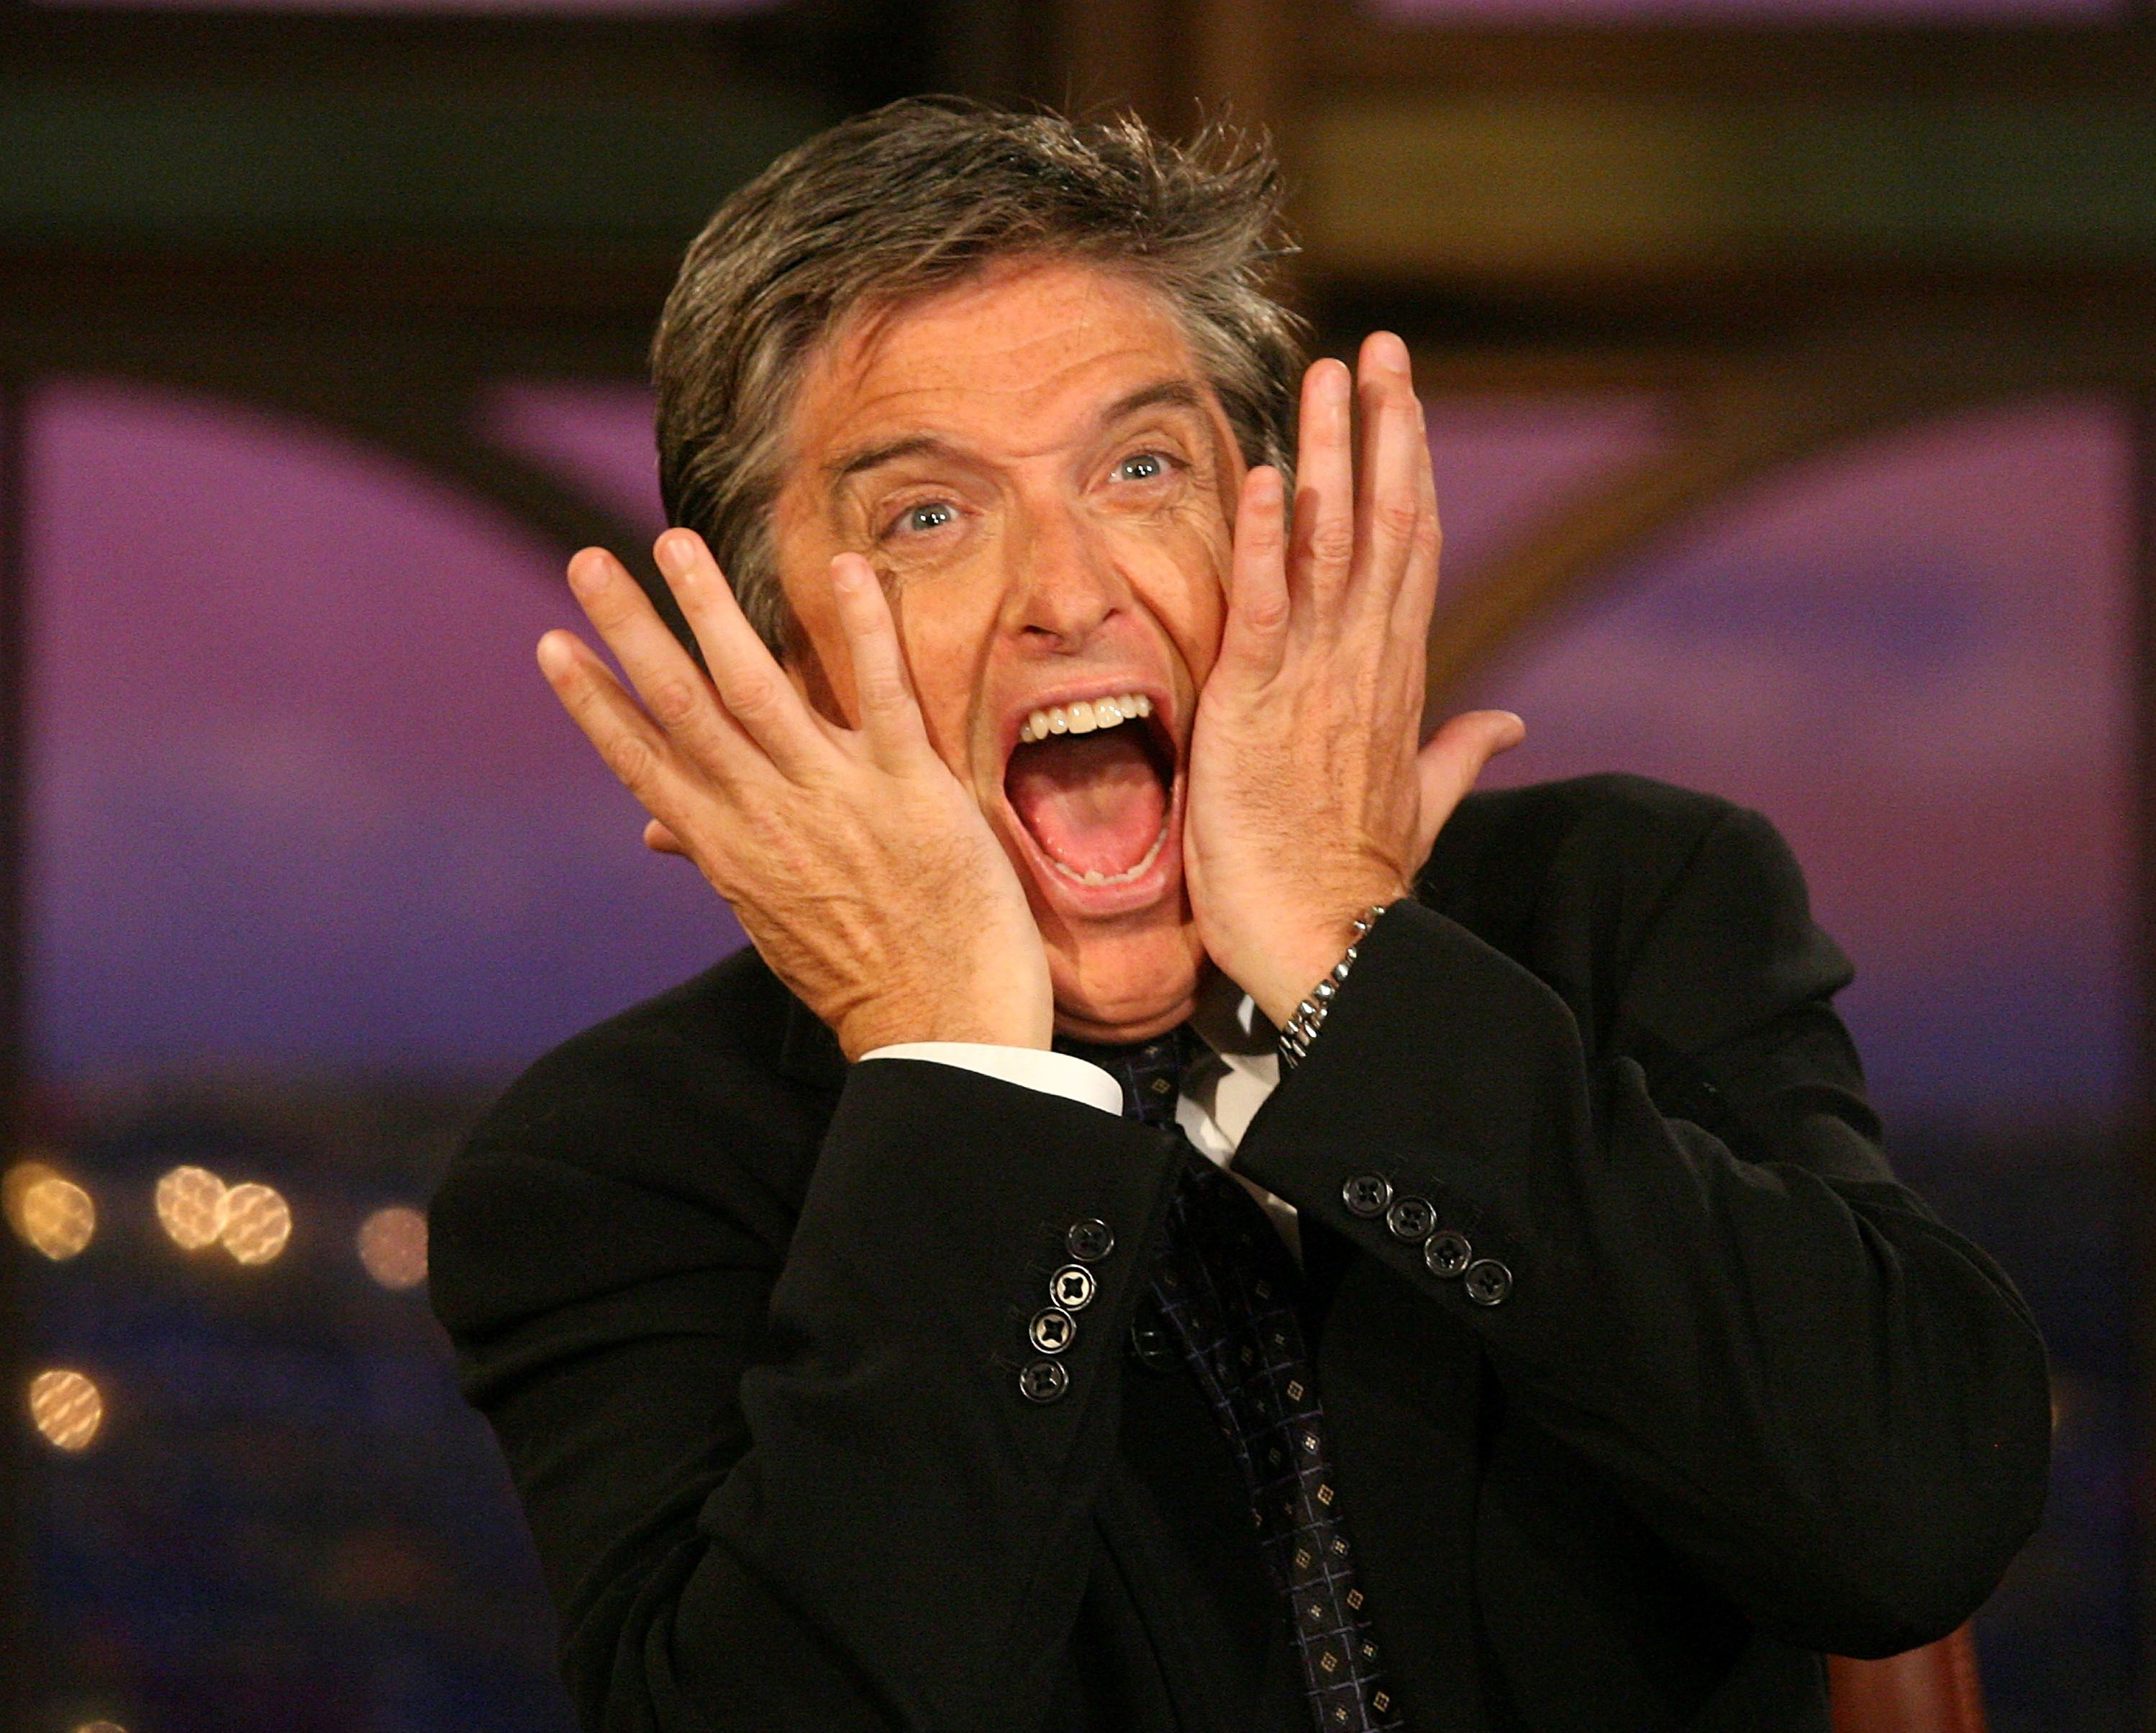 Craig Ferguson earned a 8.5 million dollar salary, leaving the net worth at 30 million in 2017